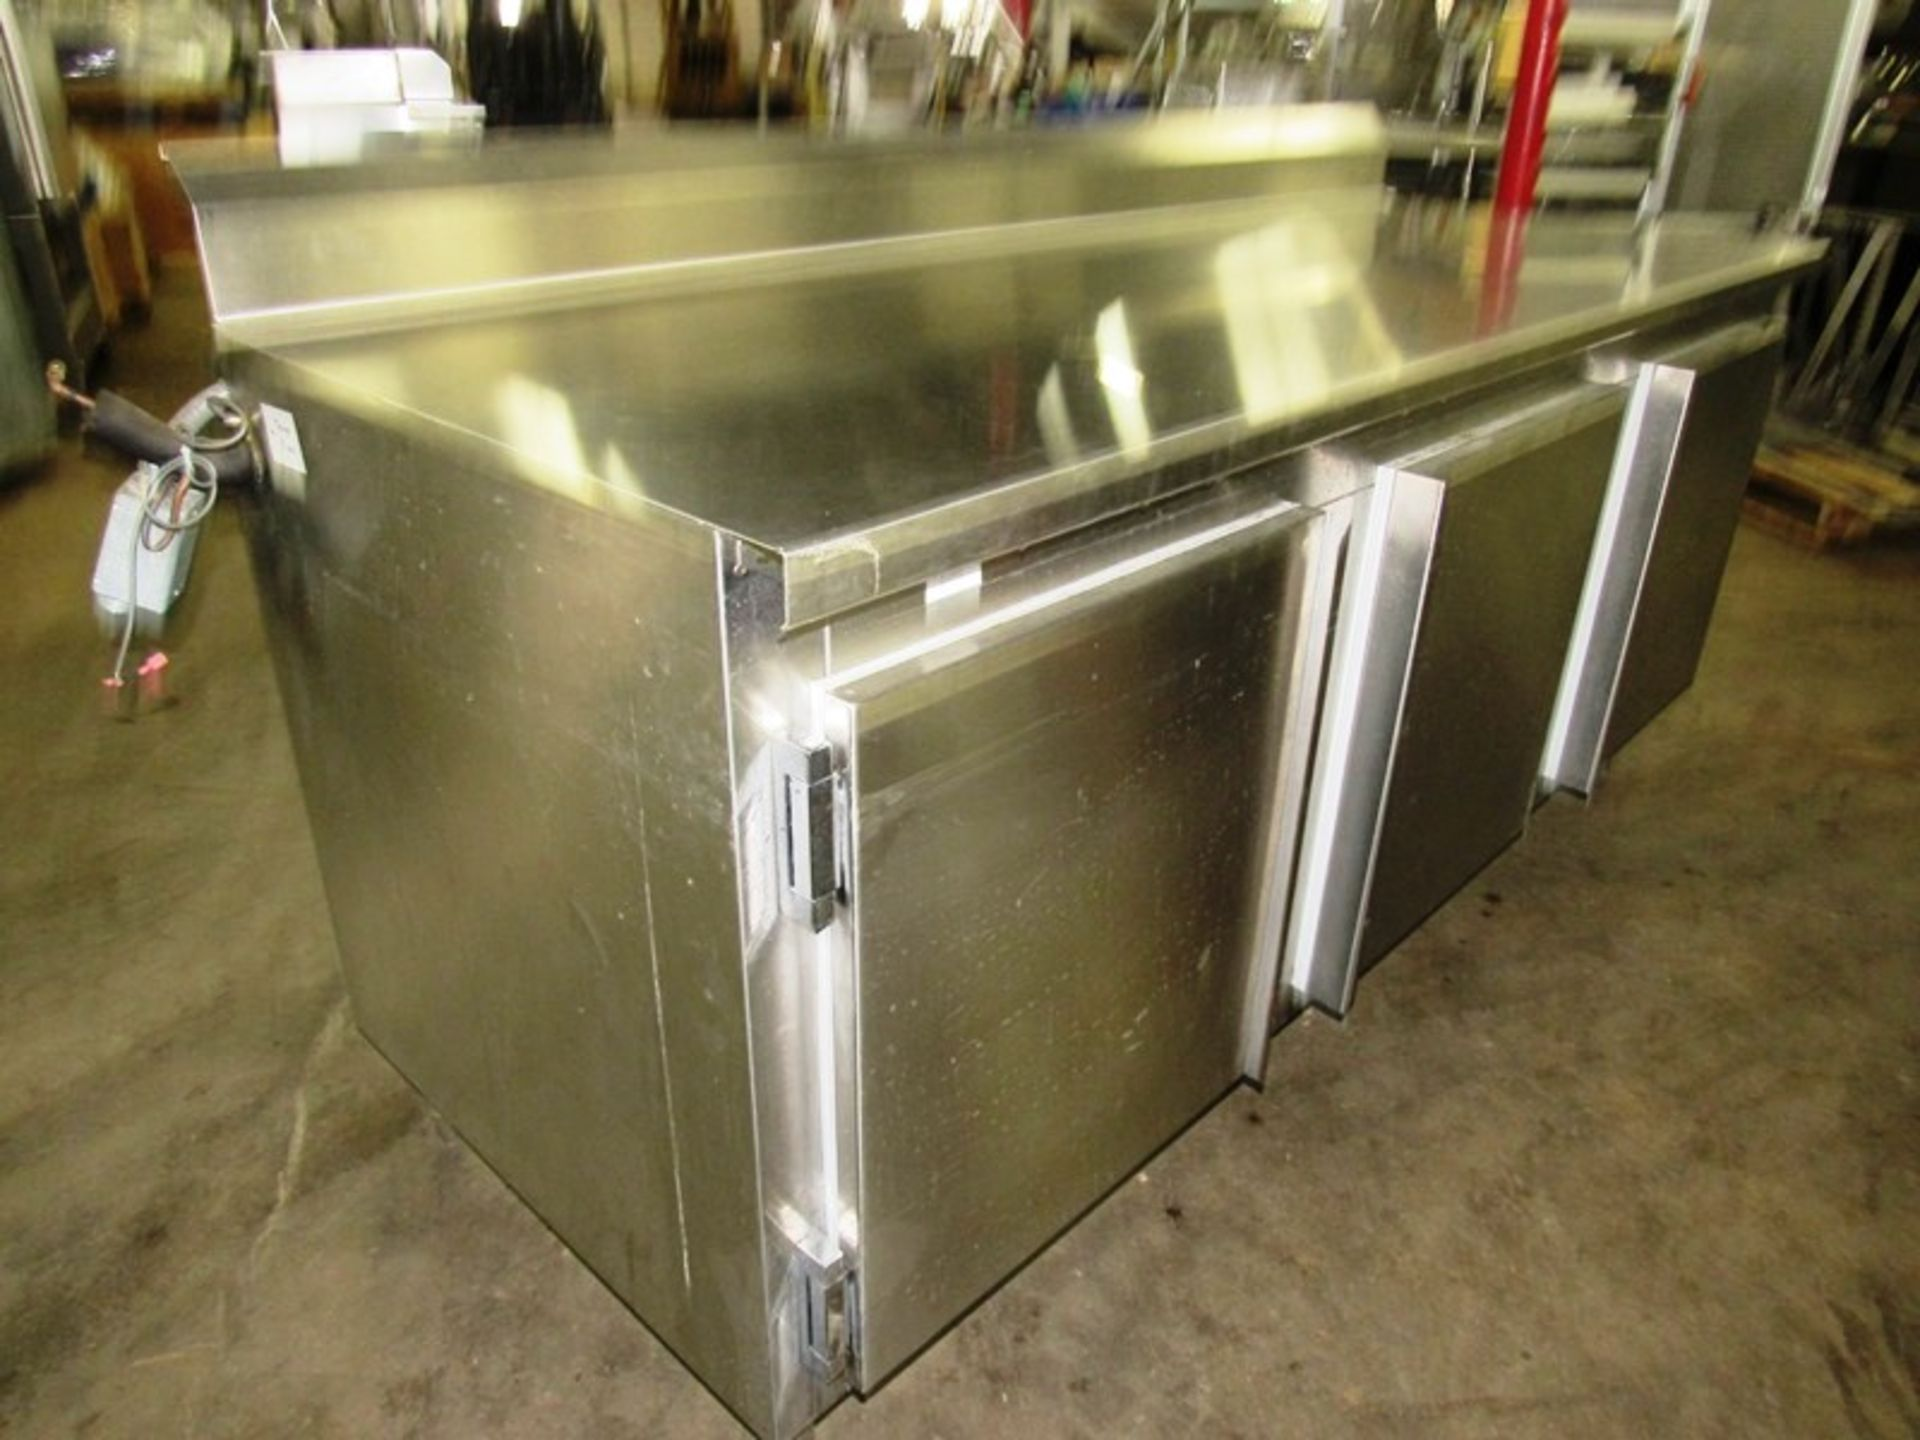 Nationwide Fabrication Mdl. 3457-50 Stainless Steel Refrigerated Prep Table, 3 doors, 7 shelves, 80""